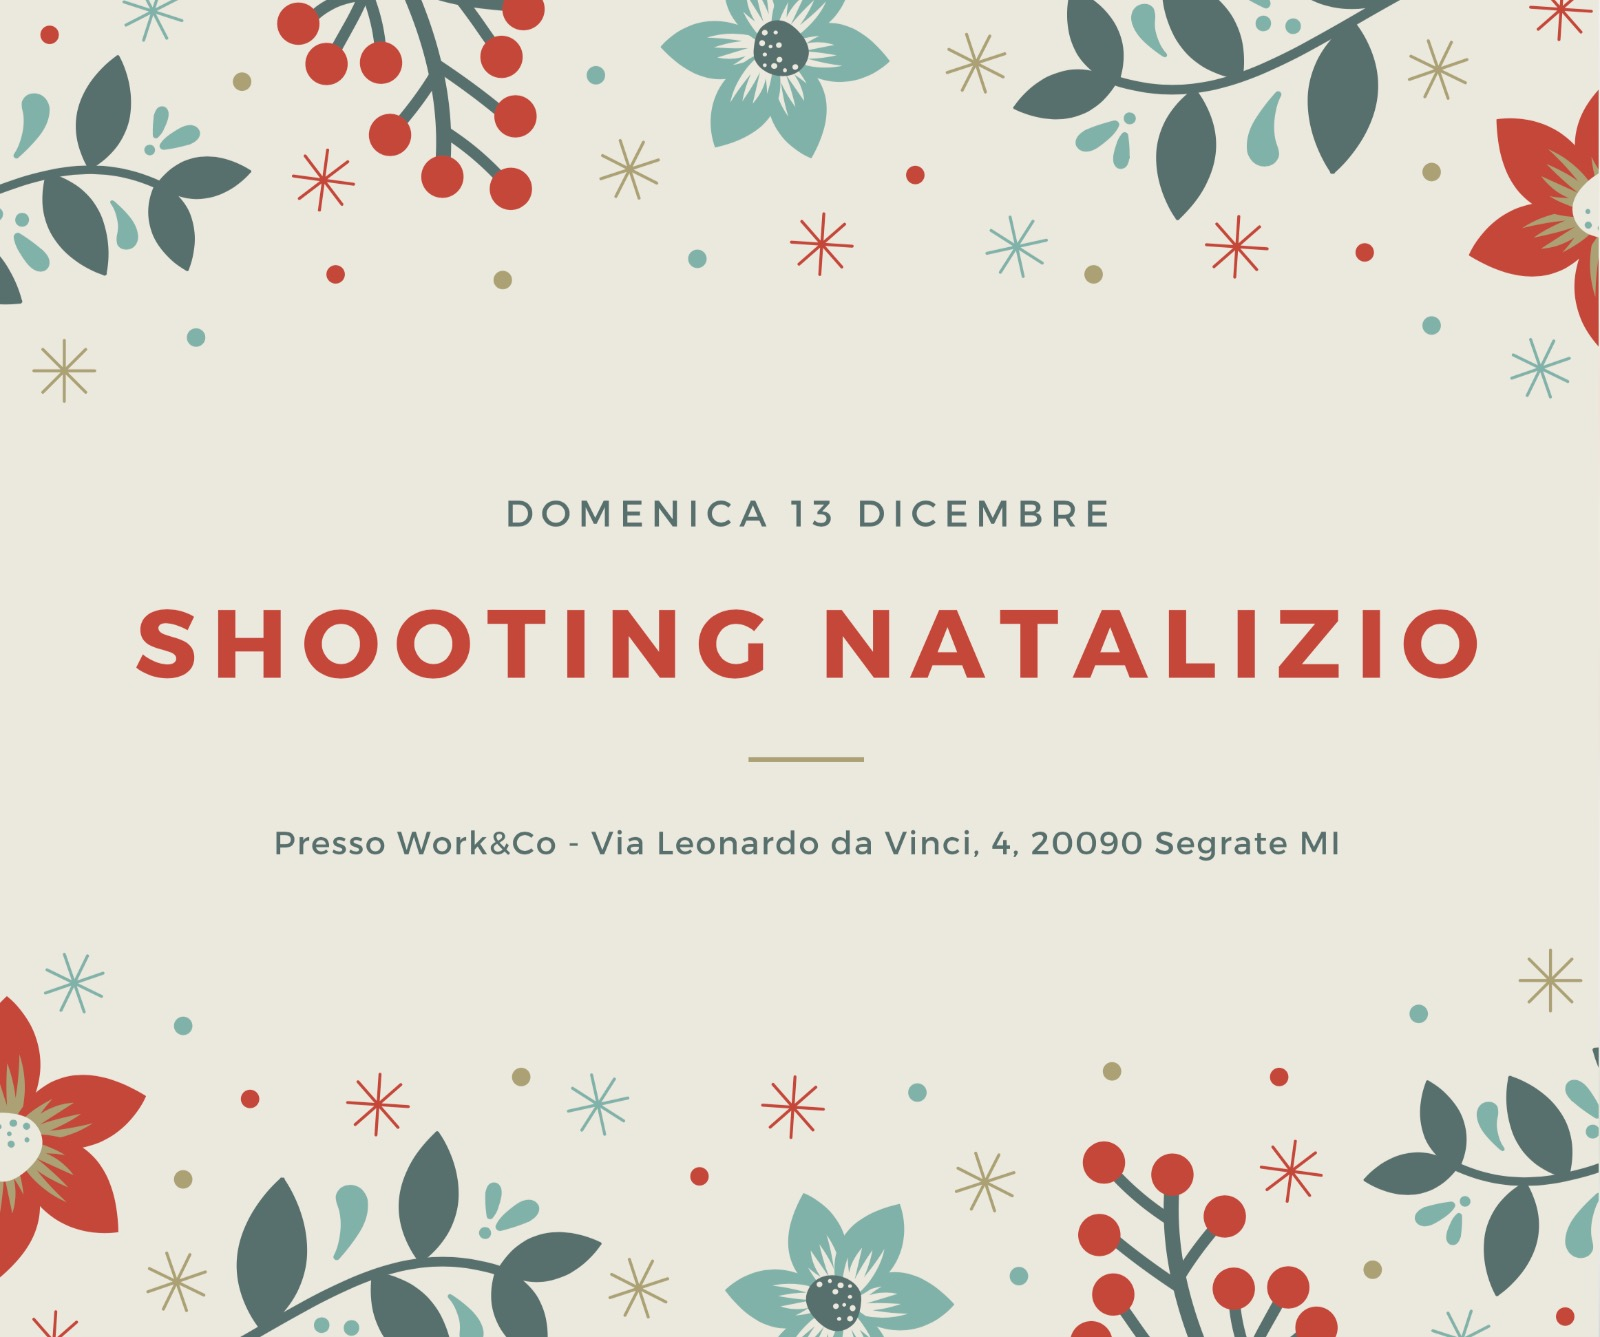 Shooting Natalizio